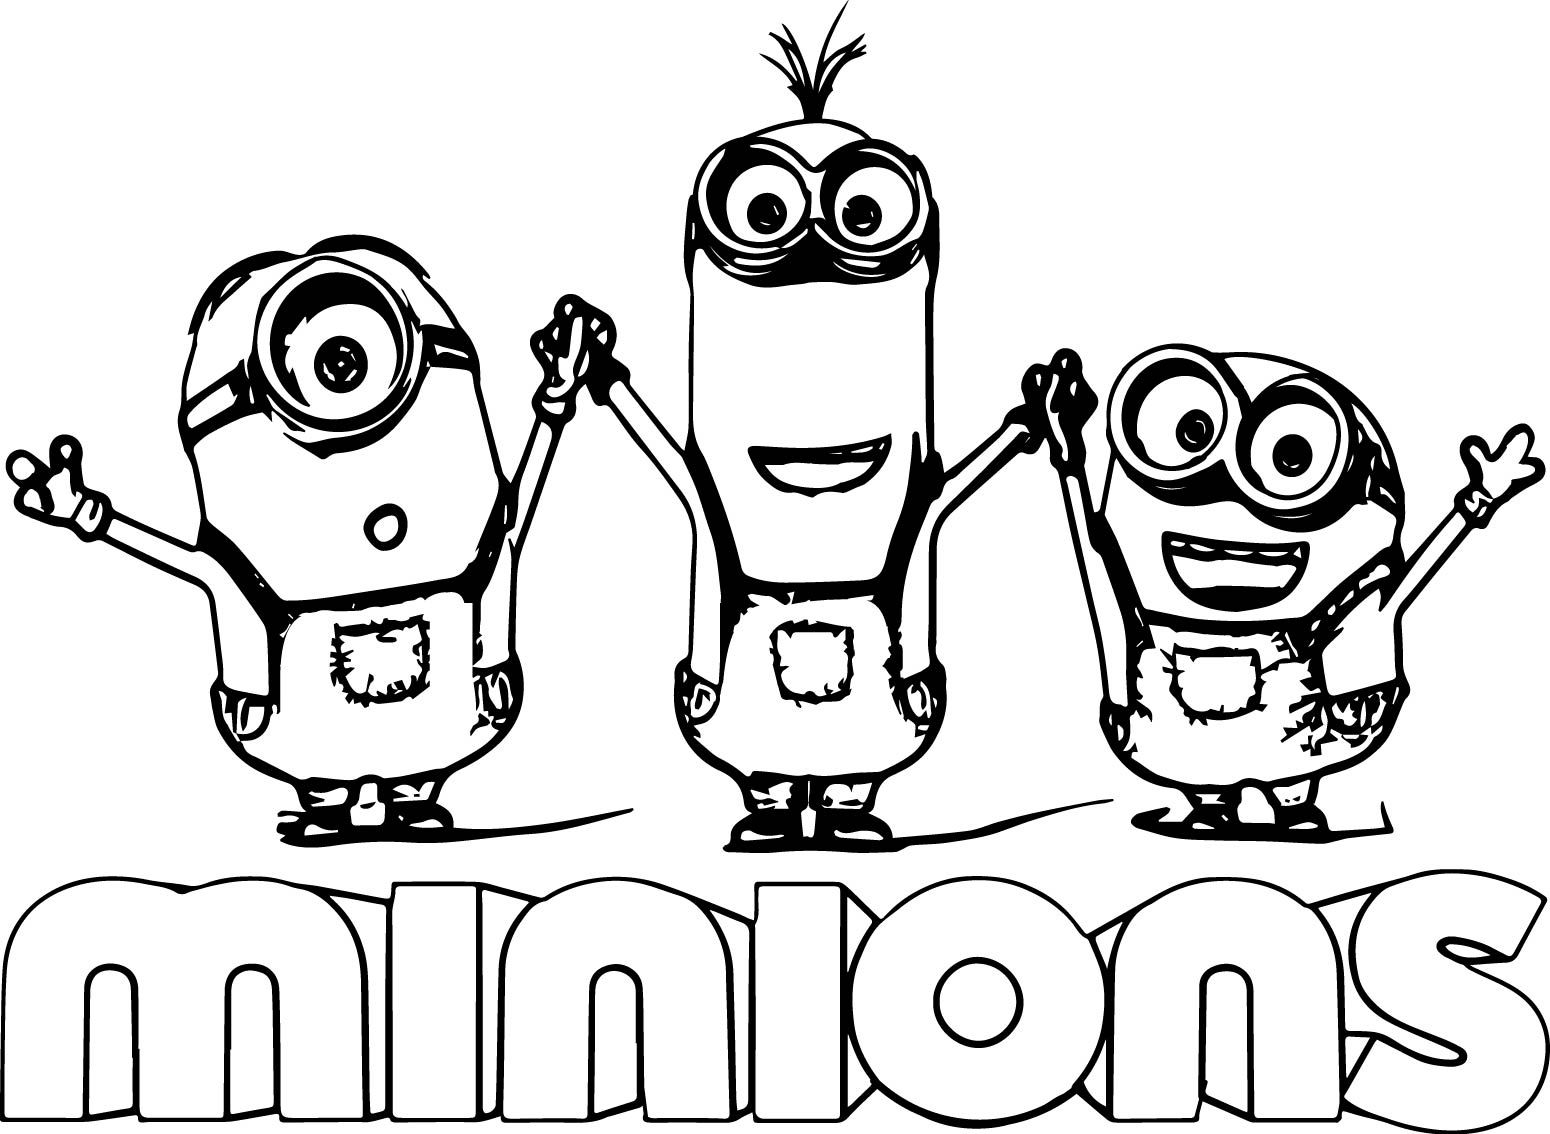 Uncategorized Despicable Me Minion Coloring Pages image result for despicable me coloring pages pages